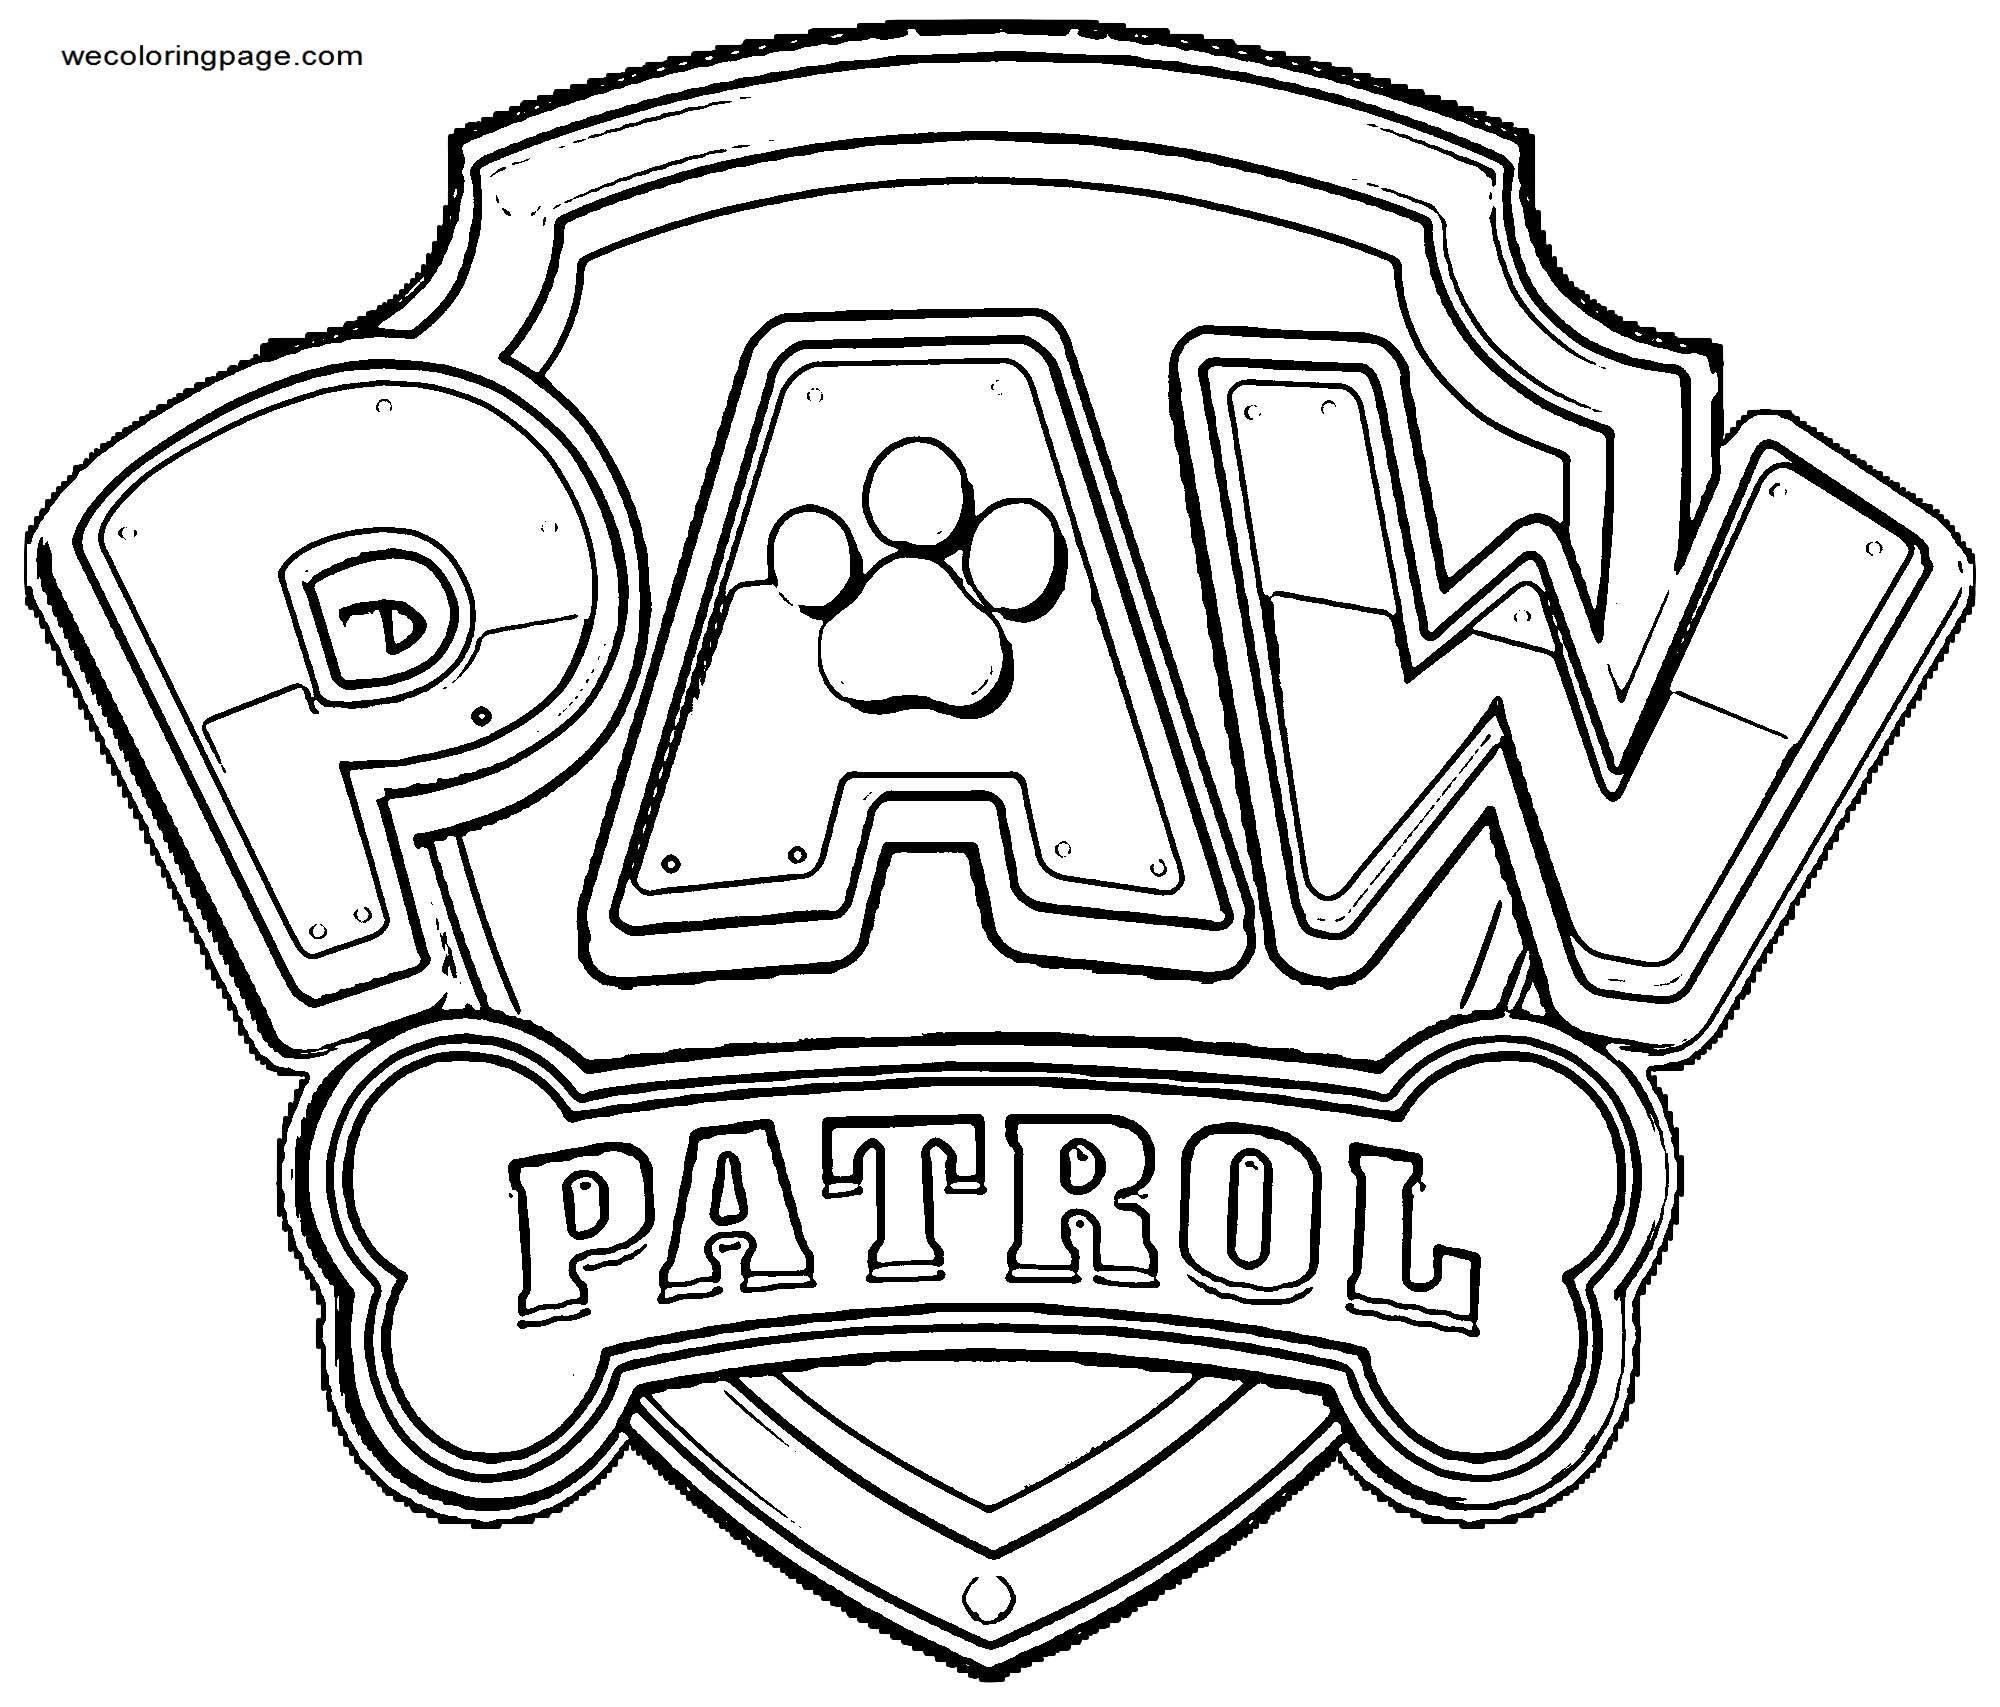 paw patrol coloring outline rocky paw patrol coloring lesson kids coloring page paw coloring patrol outline